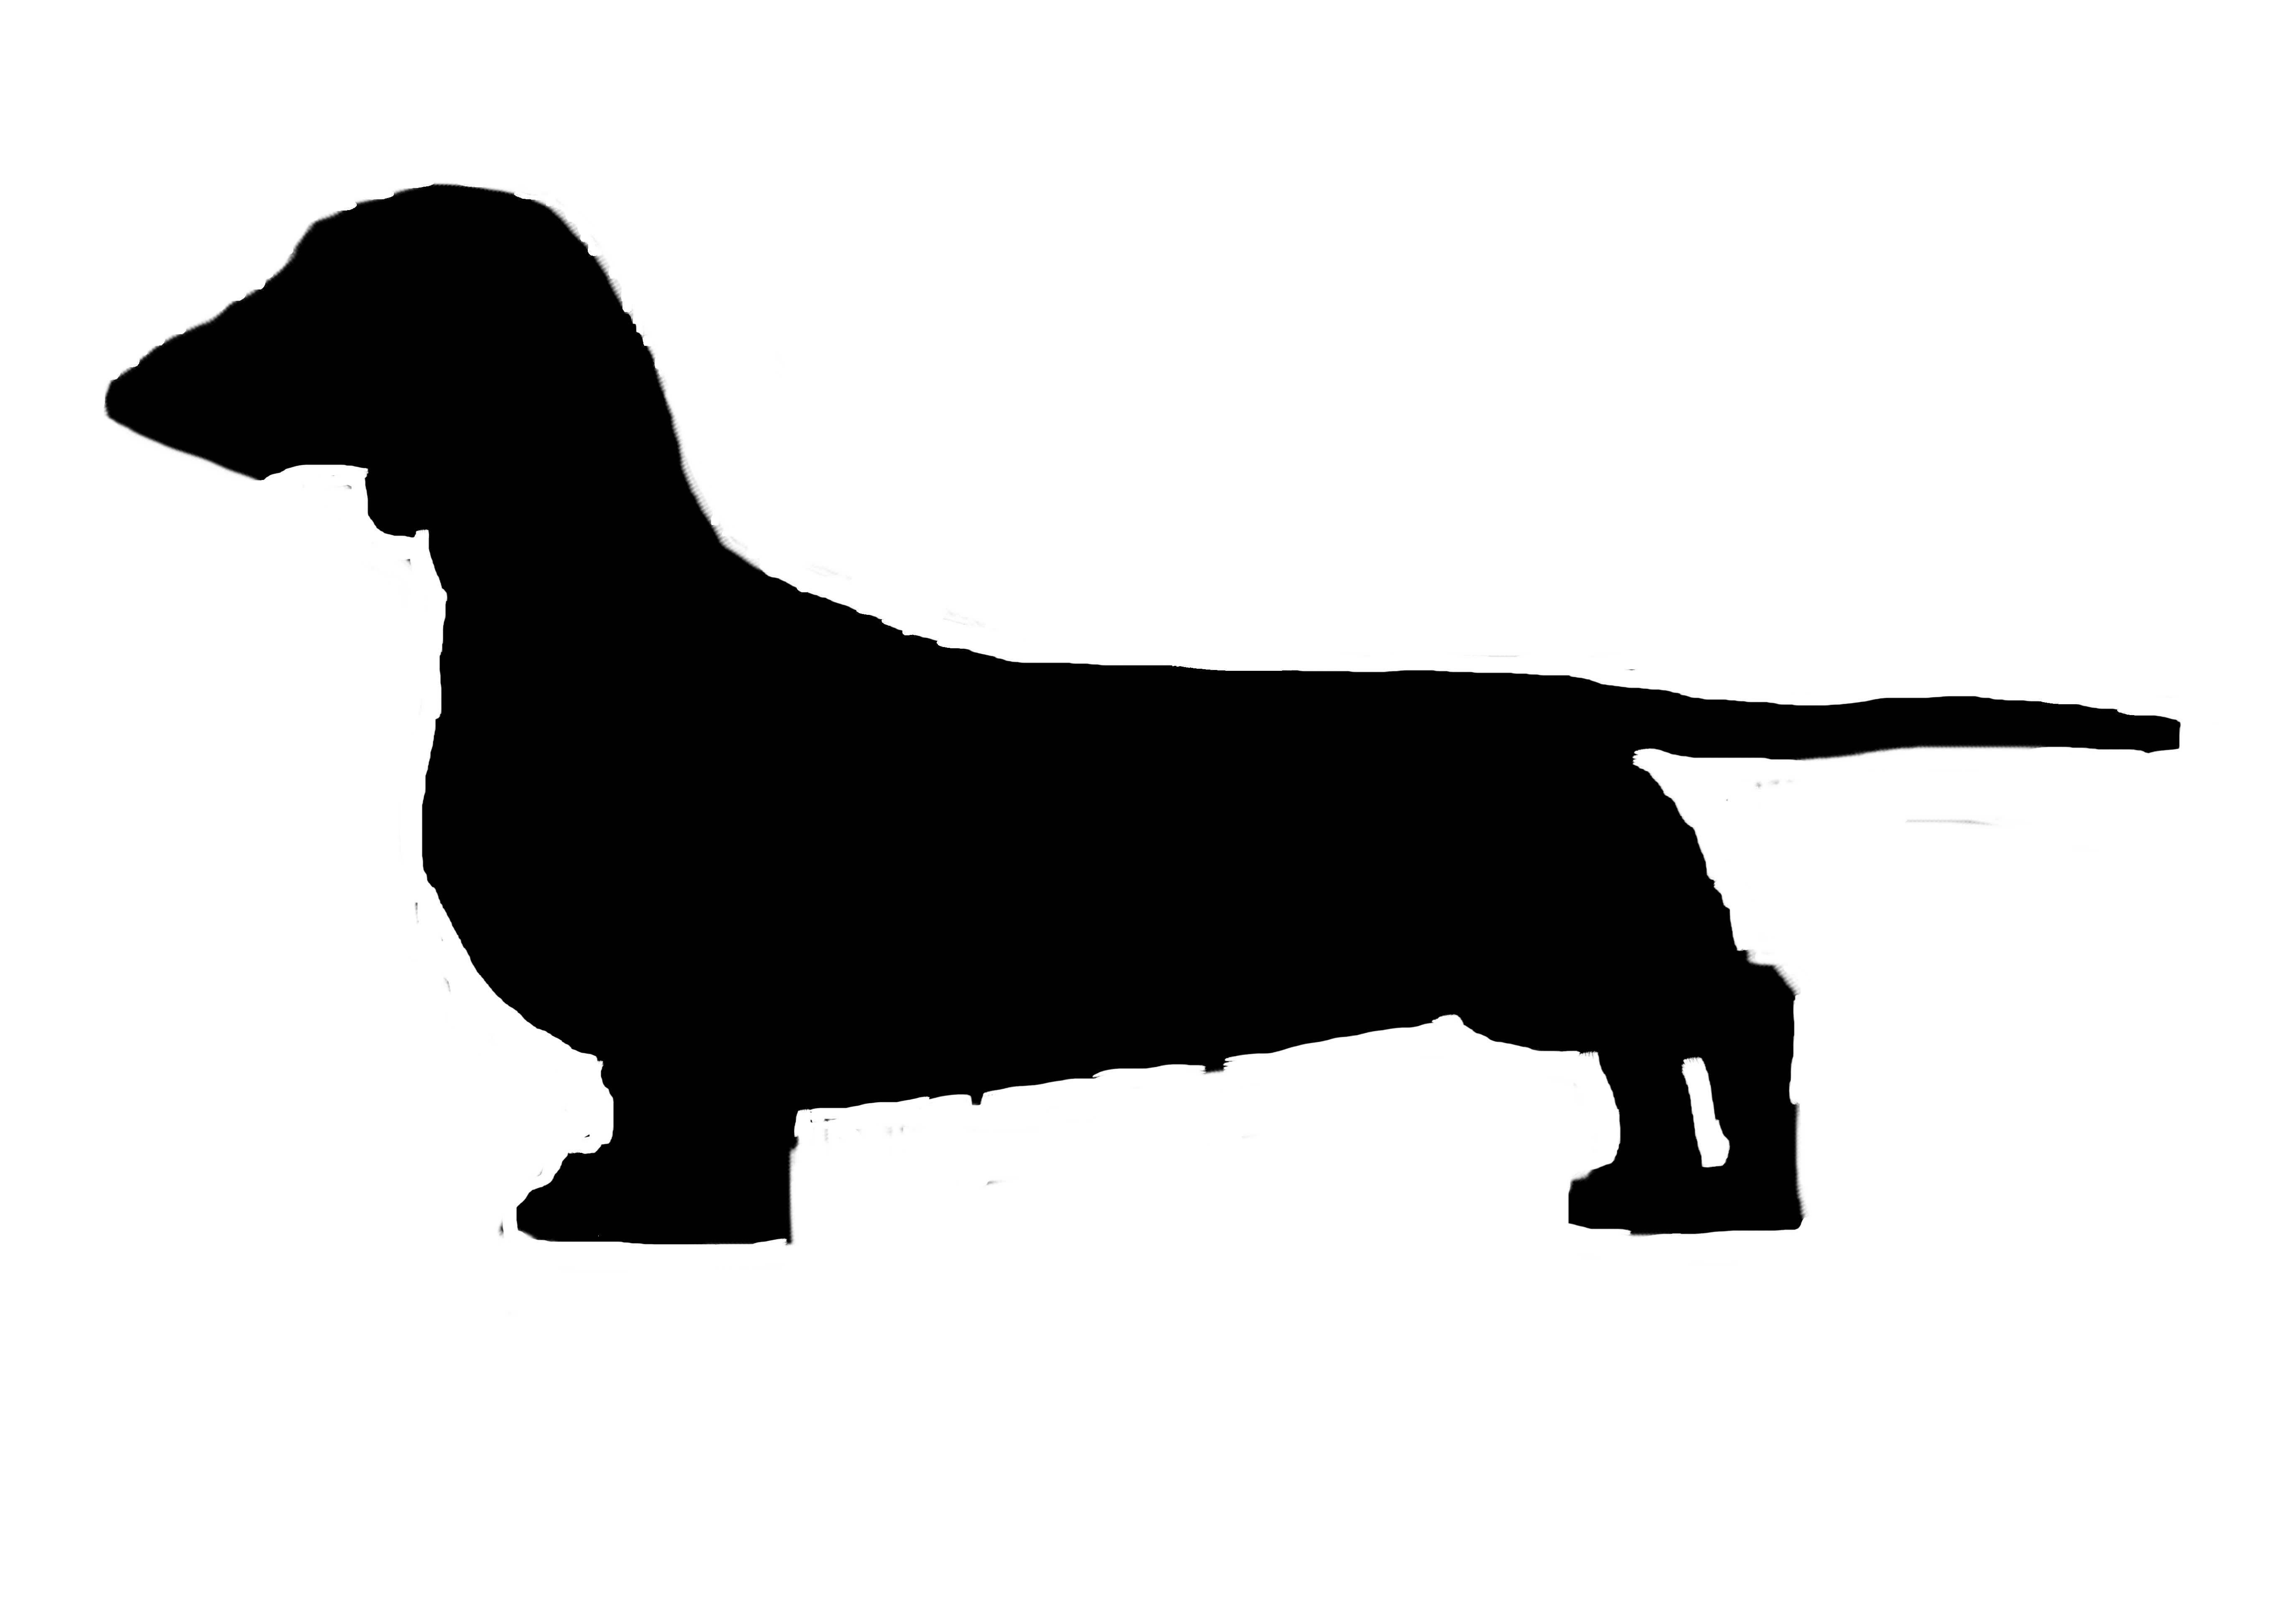 dachshund vector dachshund vector art at vectorifiedcom collection of vector dachshund